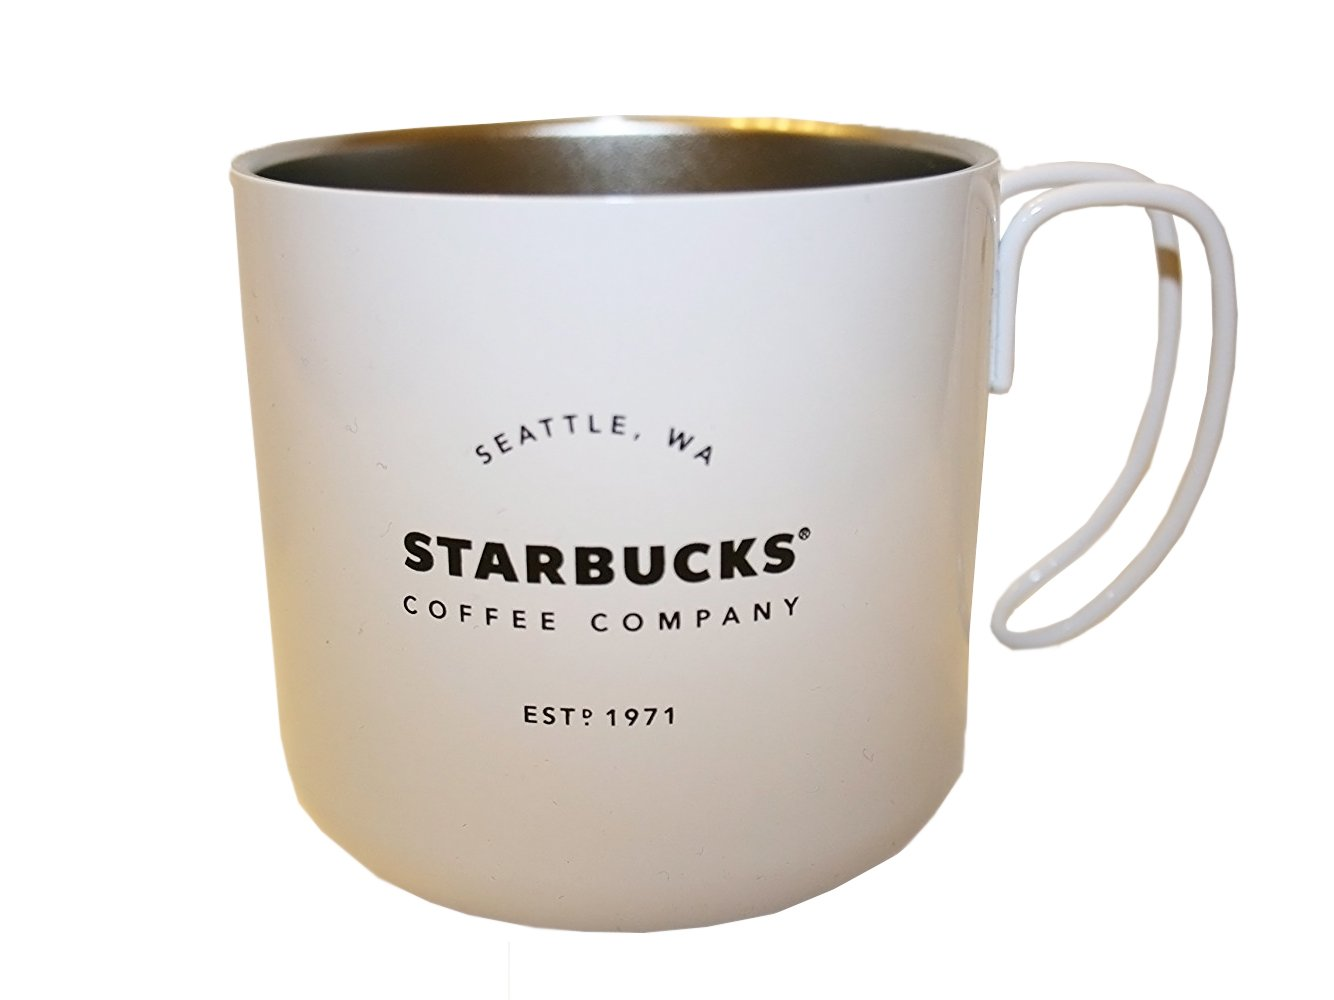 Starbucks Stainless Steel cup with wire handle (White)